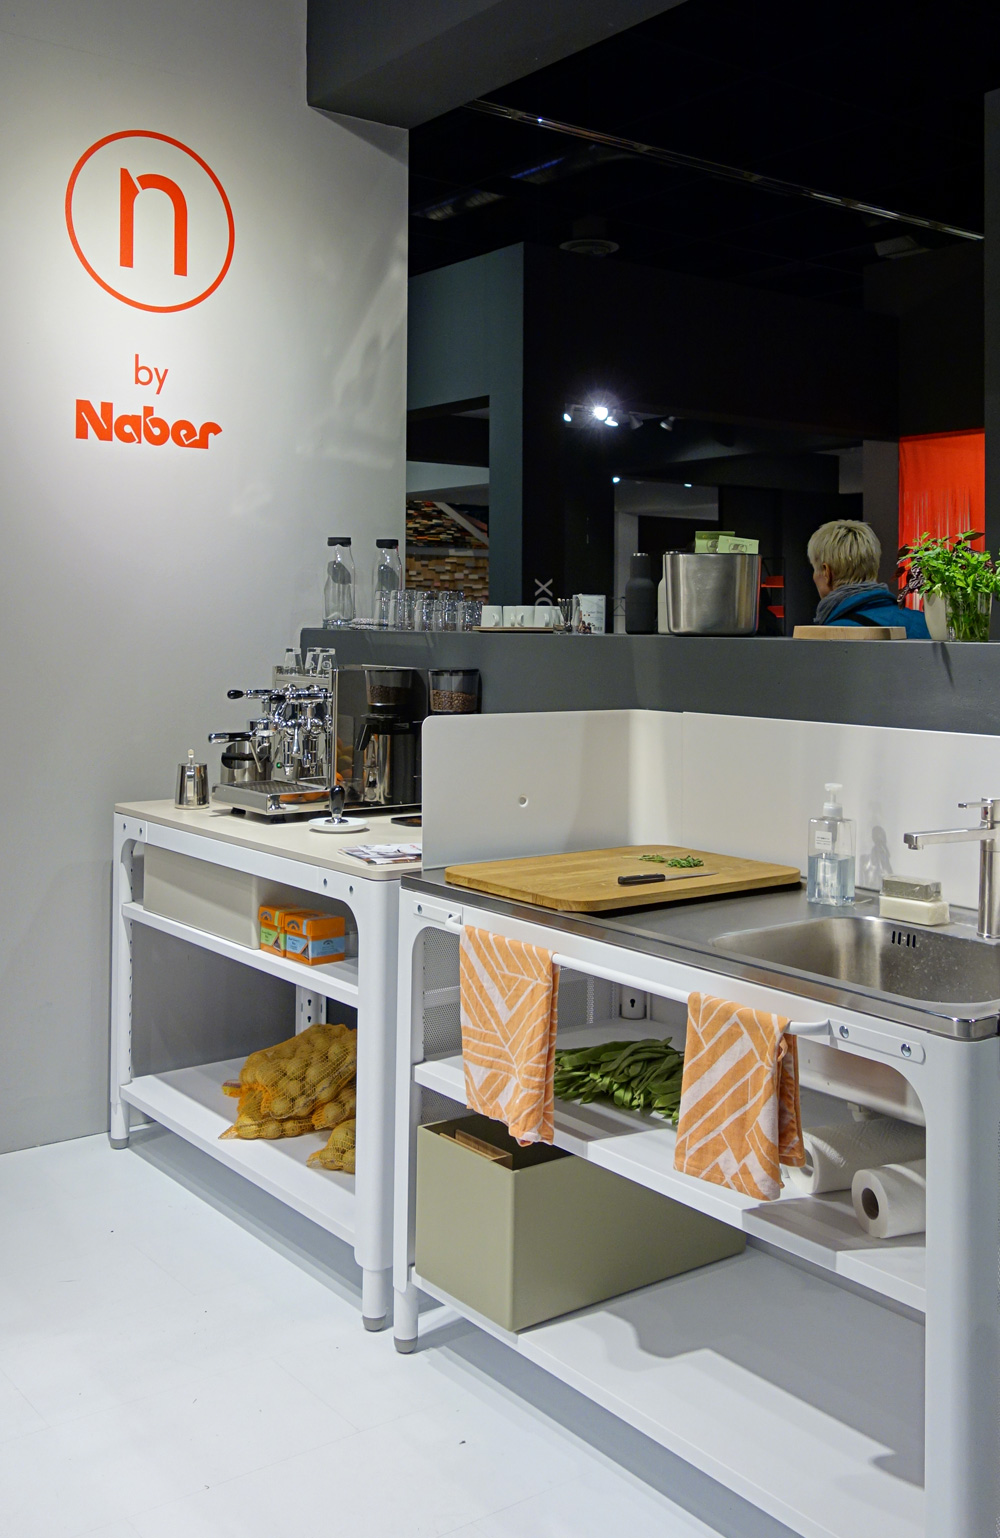 IMM-2014-Internationale-Moebelmesse-Koeln-N-By-Naber-Modulkueche-1